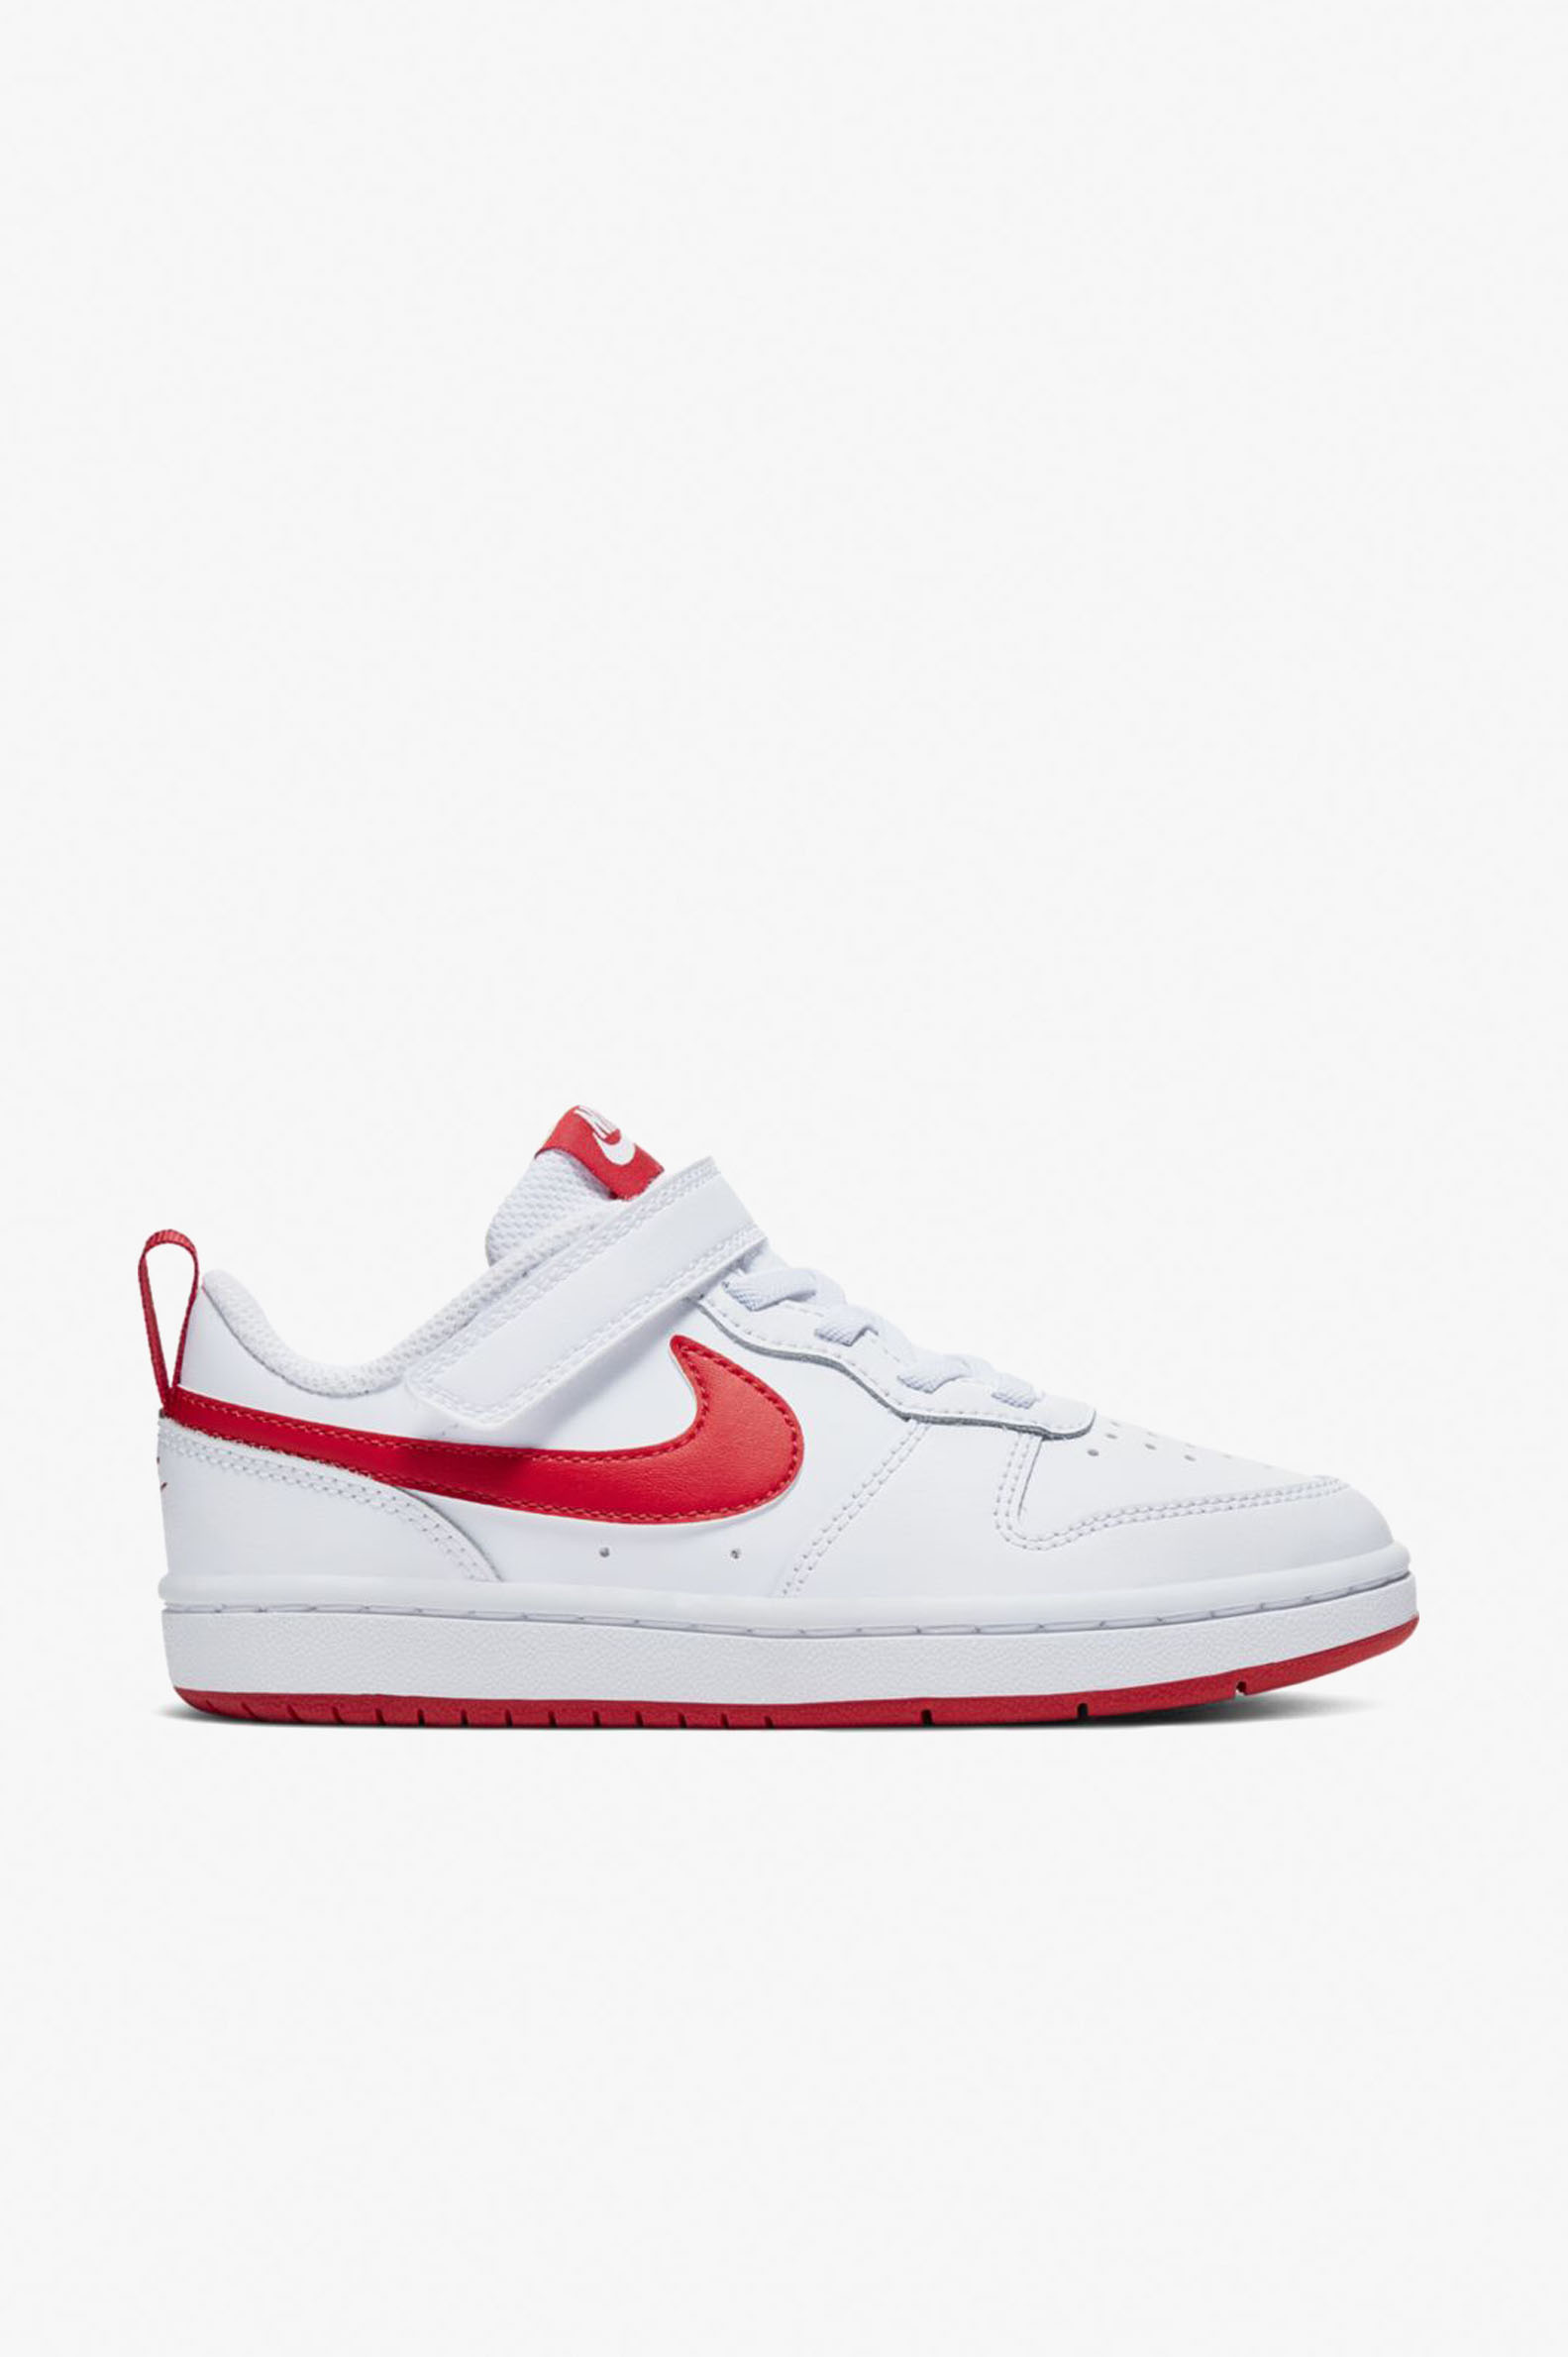 NIKE COURT ROYALE GS WHITE NAV RED Zapatos para todos